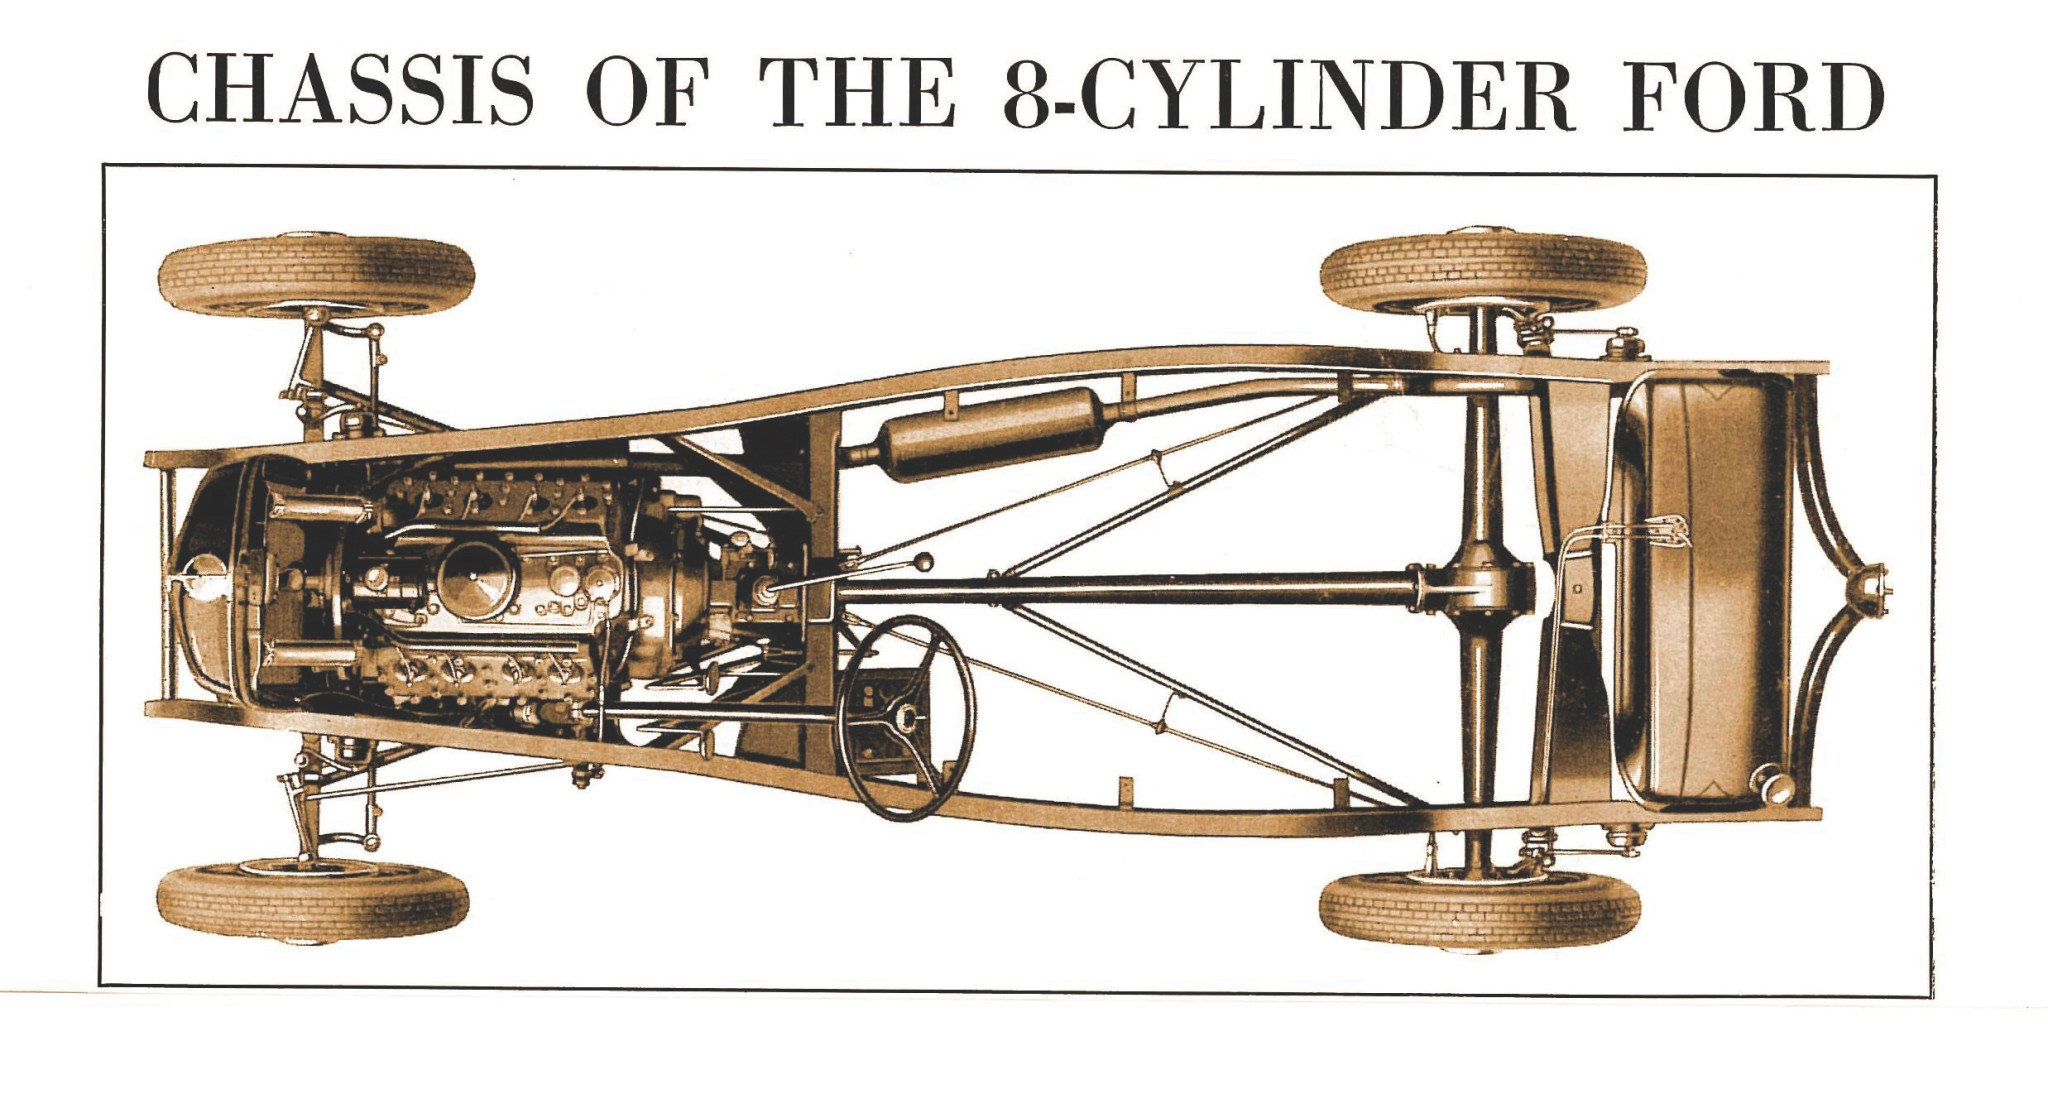 promotional illustration 1932 Ford chassis